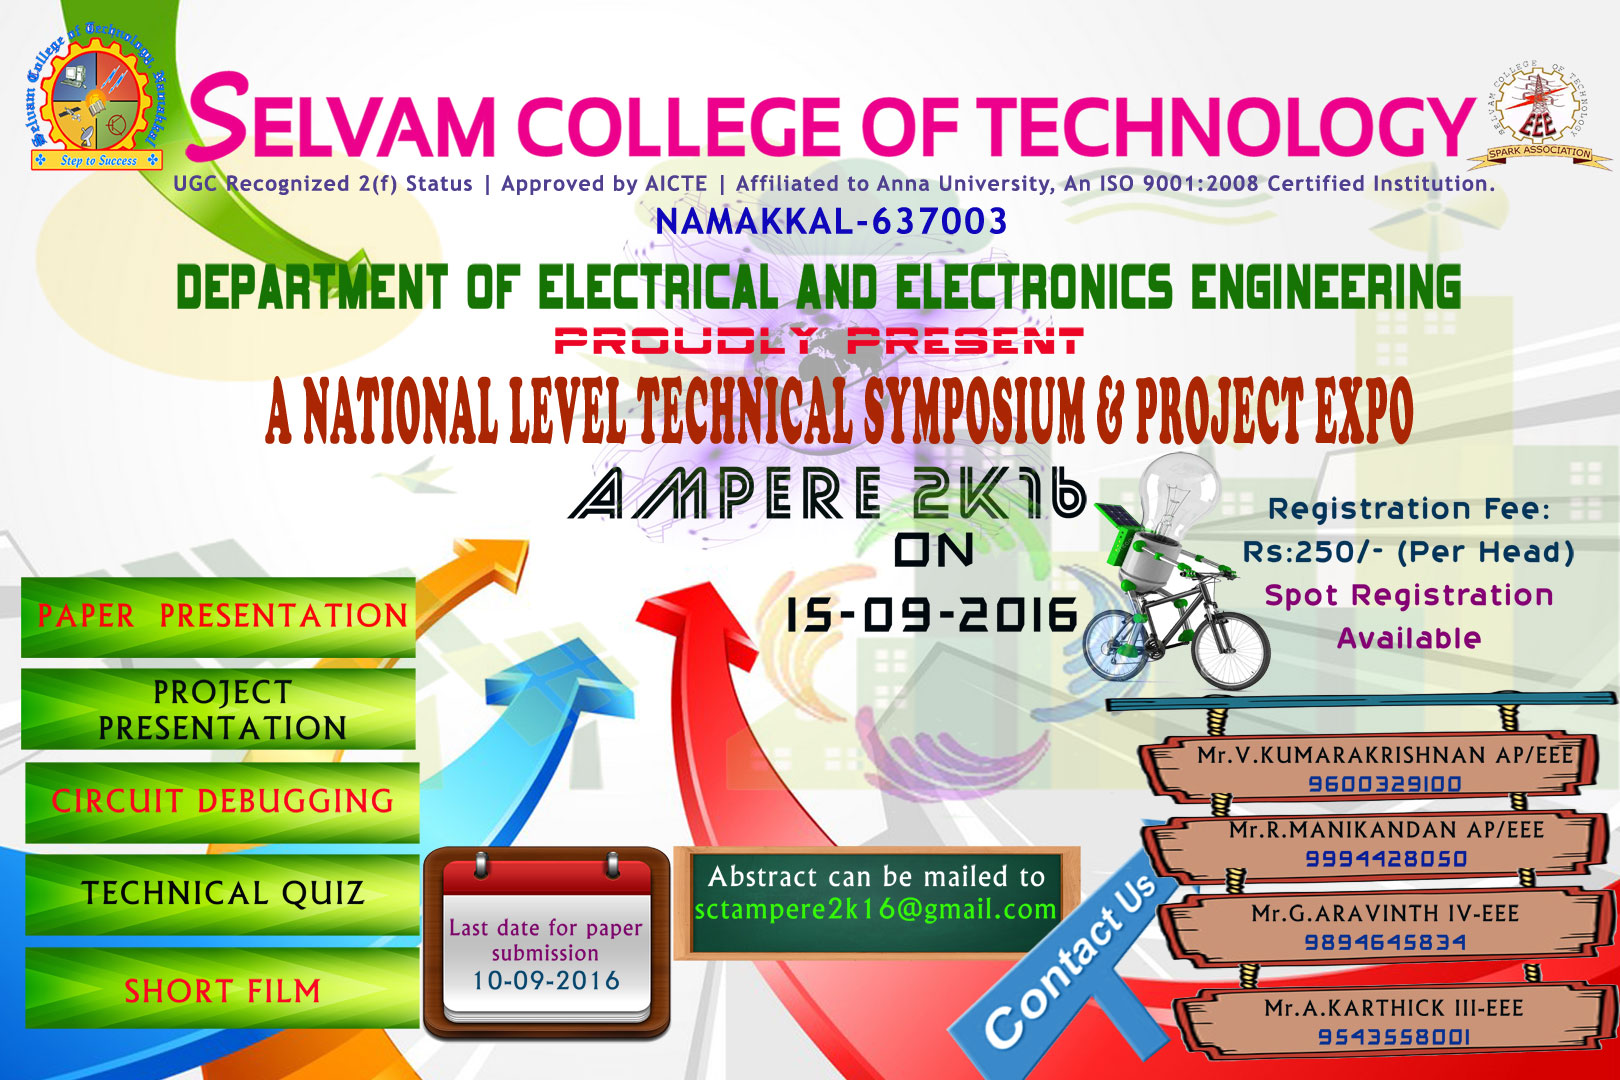 National Level Technical Symposium & Project Expo - AMPERE